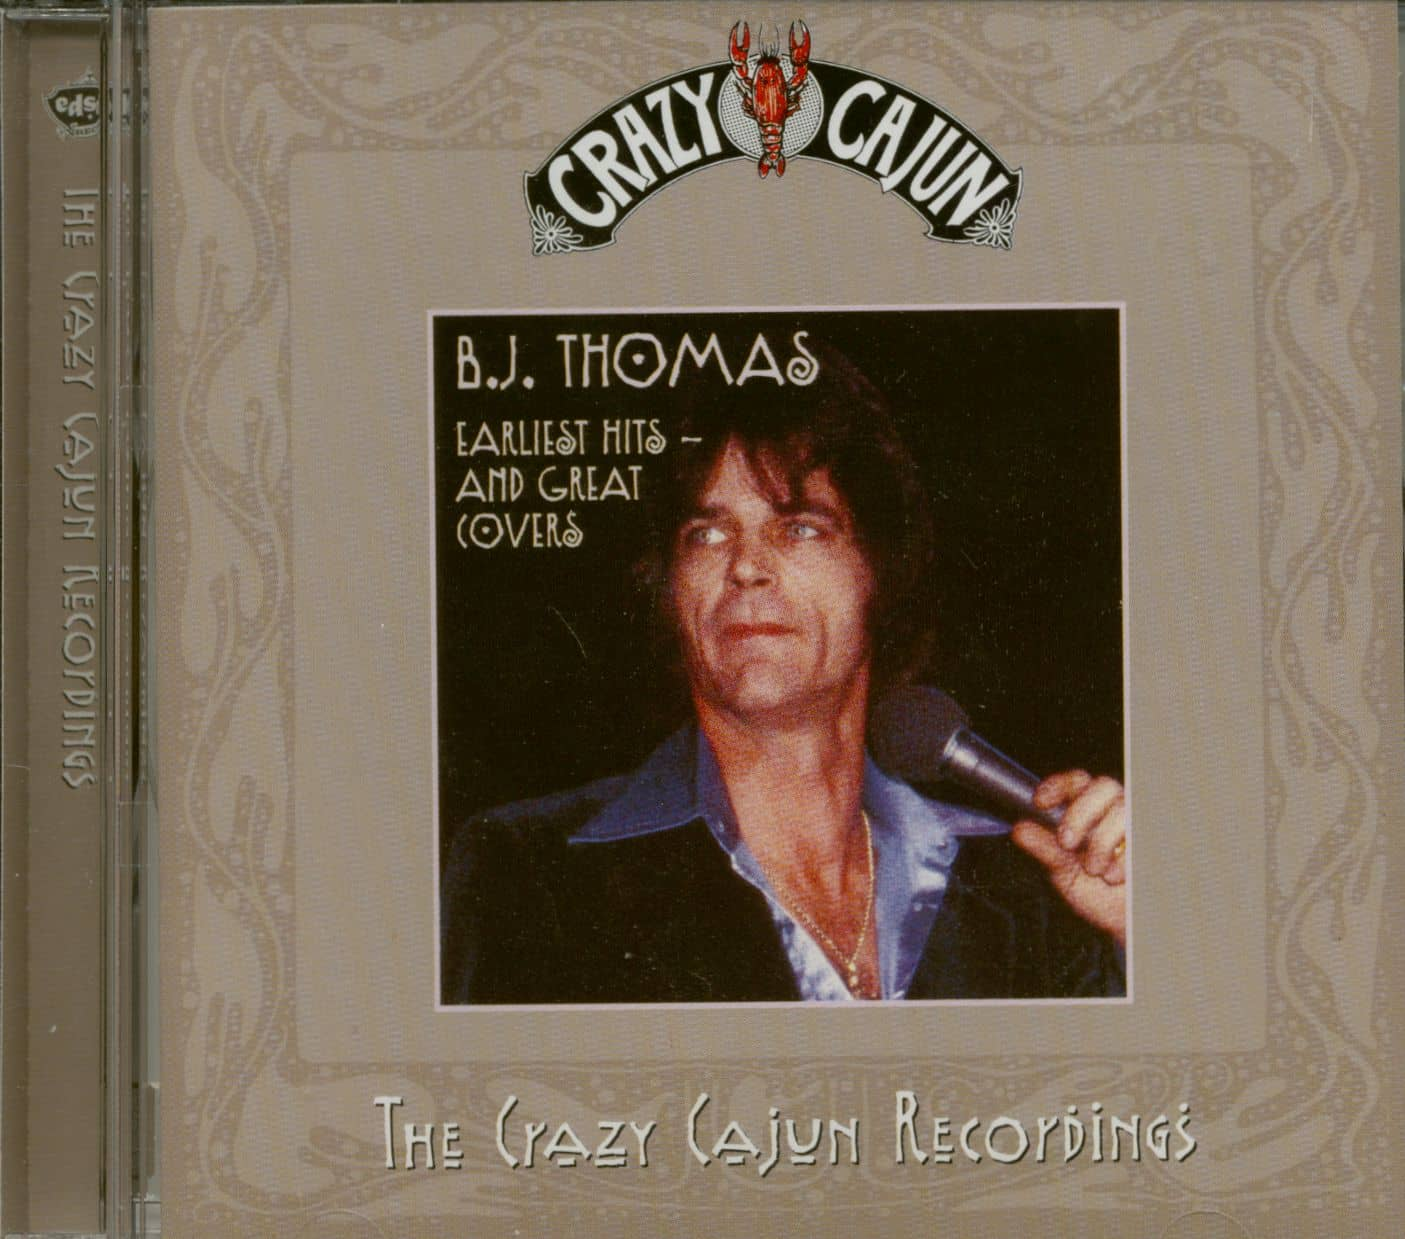 B J  Thomas Earliest Hits And Great Covers - The Crazy Cajun Recordings (CD)